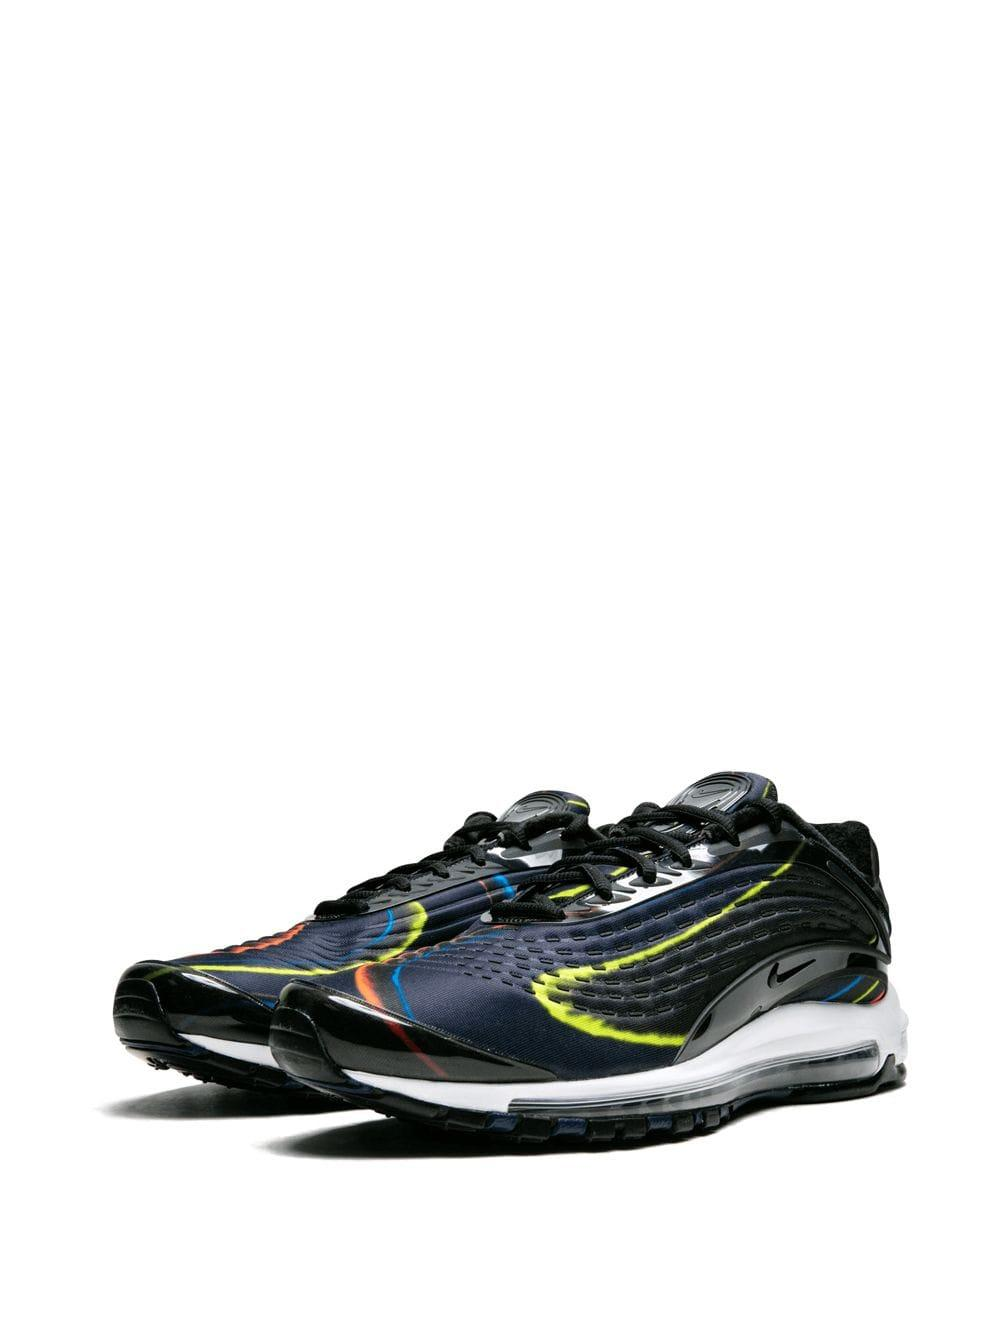 655295f48a Nike Air Max Deluxe Sneakers in Black for Men - Lyst